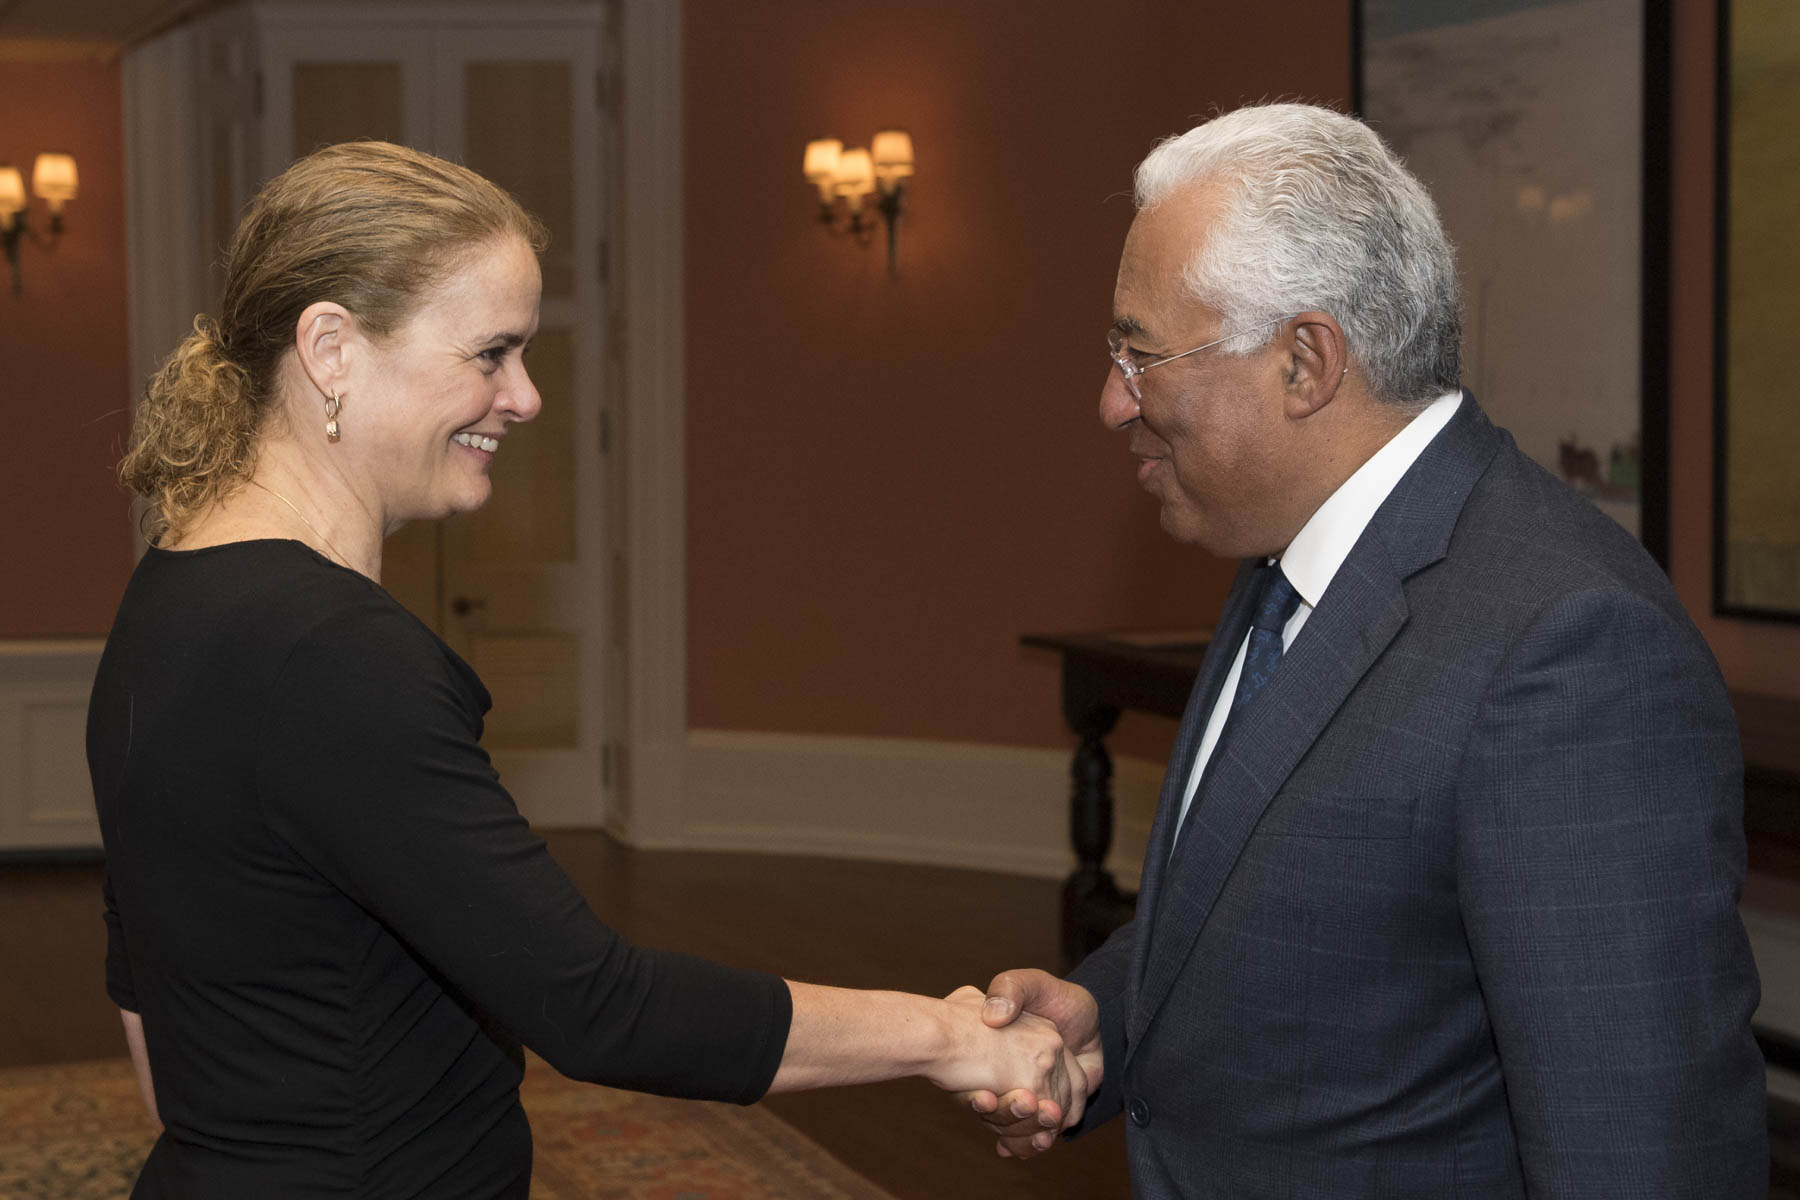 Her Excellency the Right Honourable Julie Payette, Governor General of Canada, met with His Excellency António Costa, Prime Minister of the Portuguese Republic, on Thursday, May 3, 2018, at Rideau Hall.